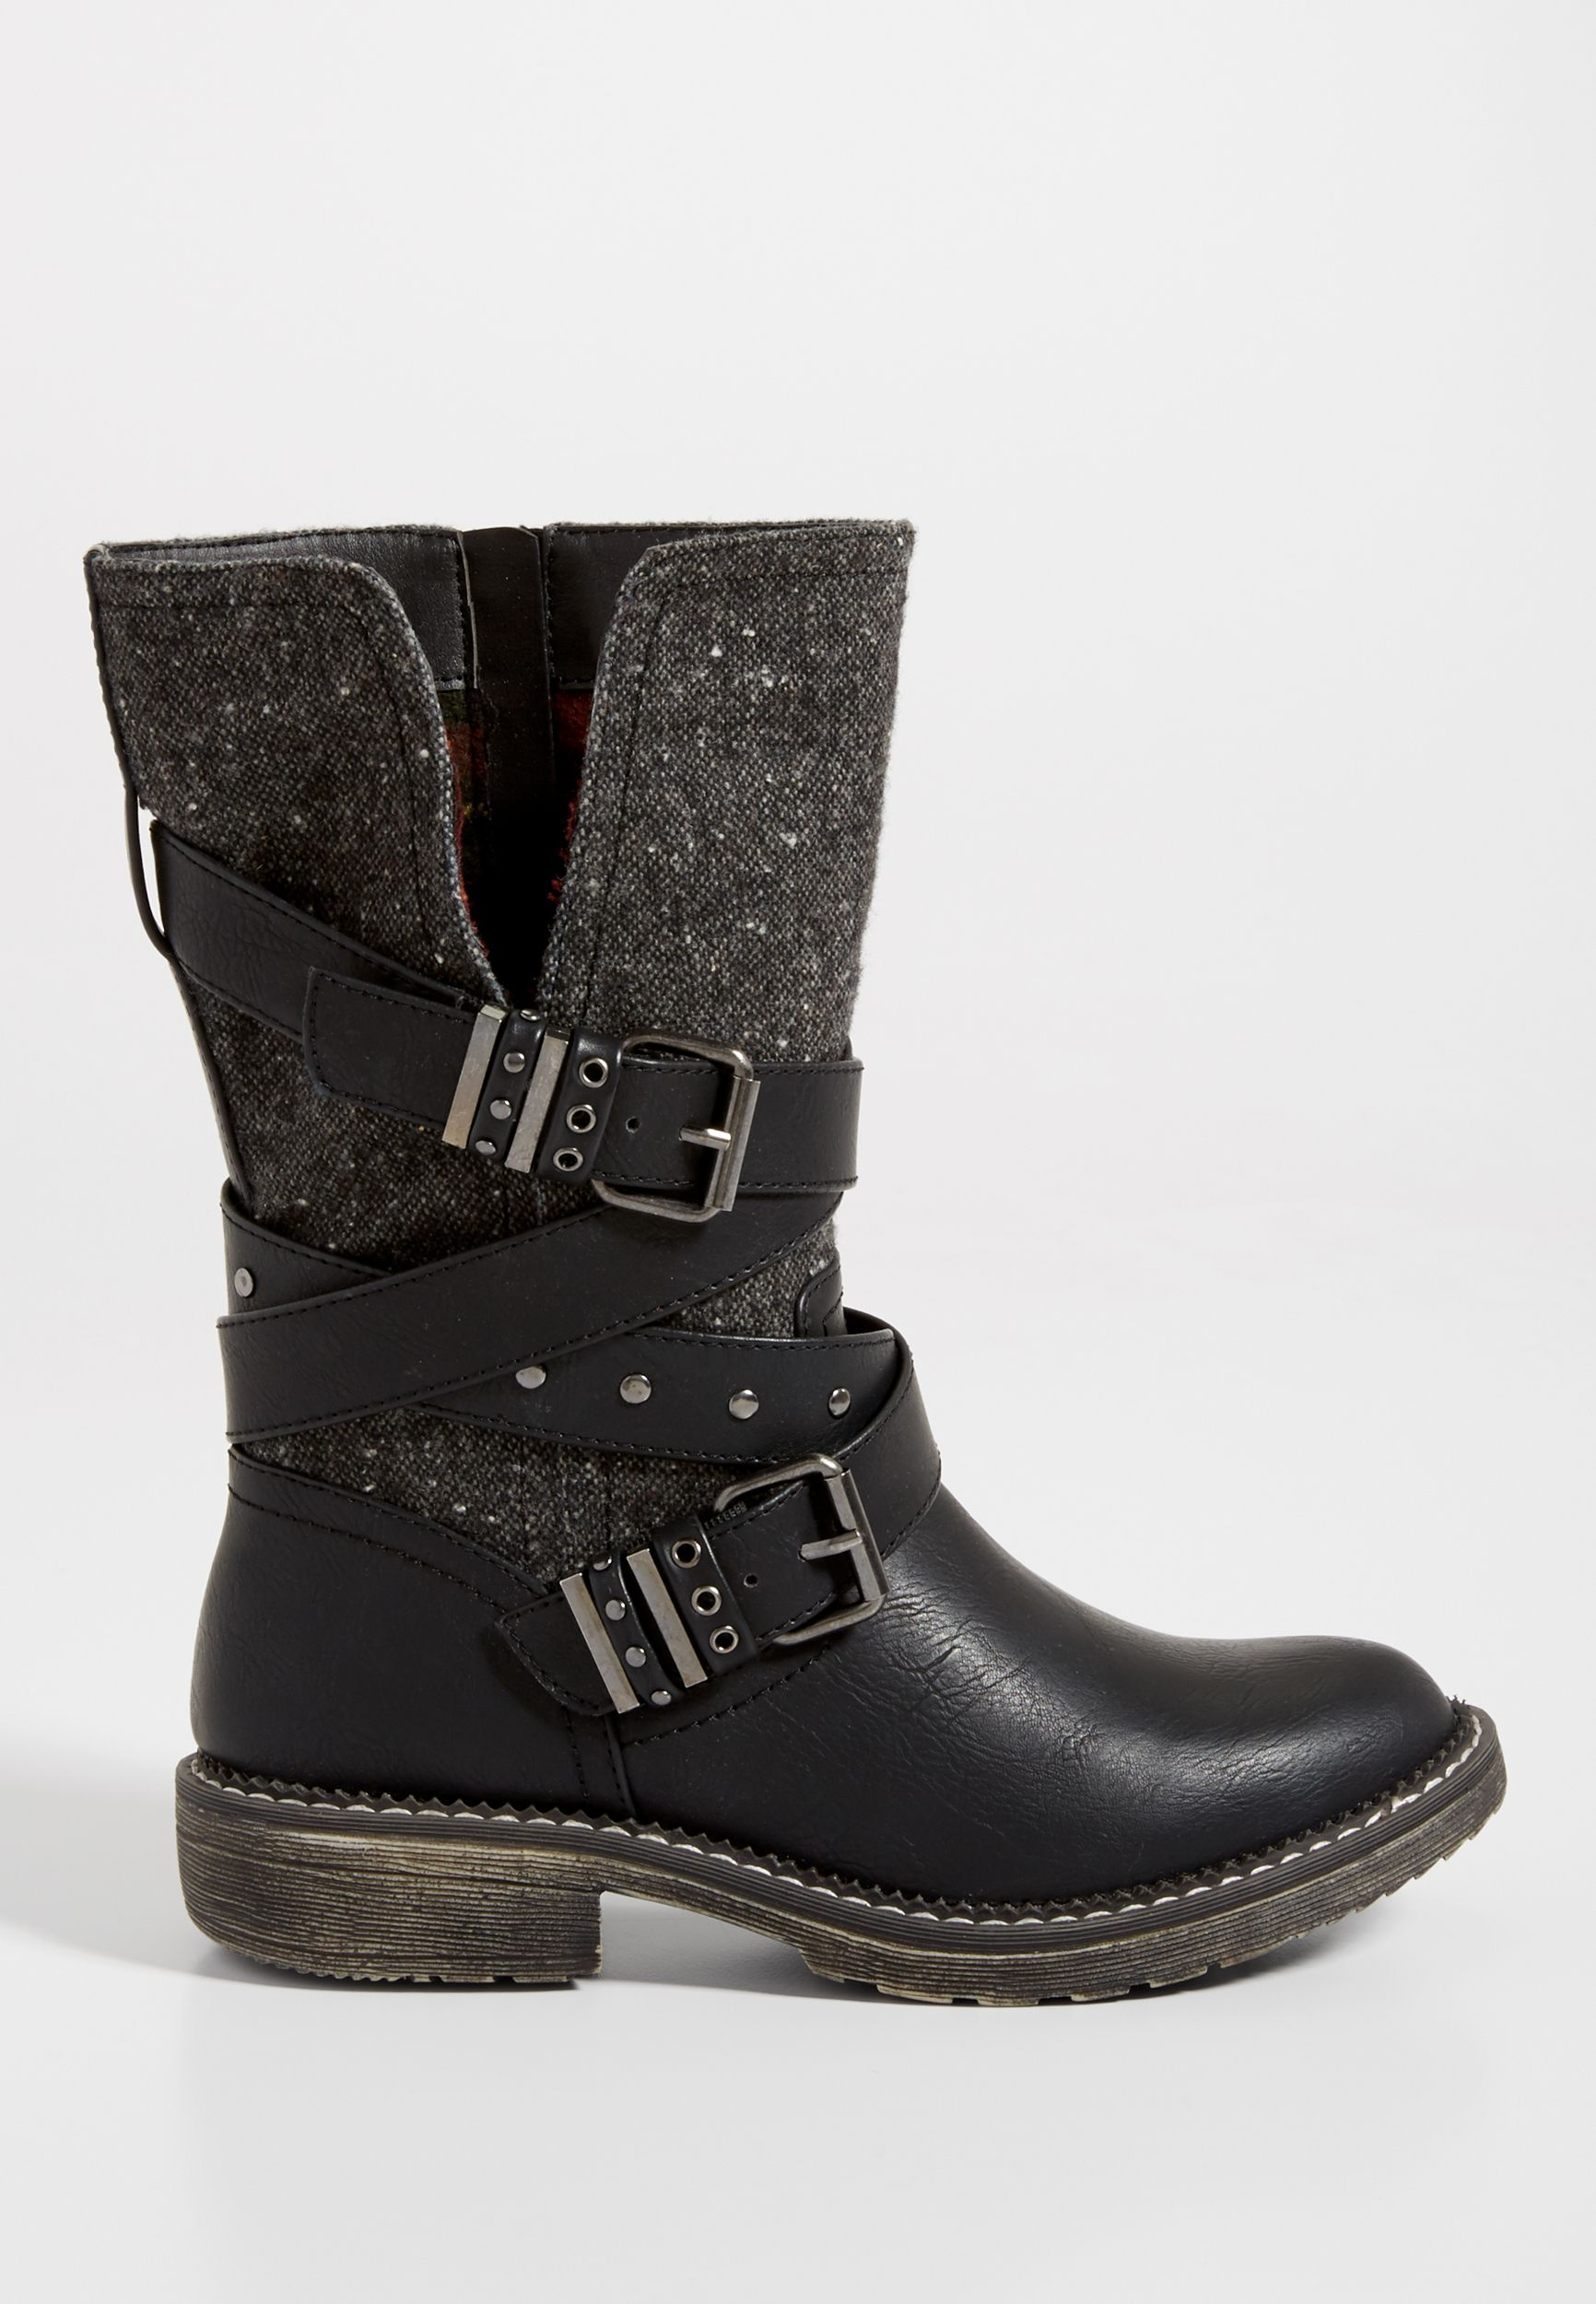 Ruby faux leather and fabric boot with buckles